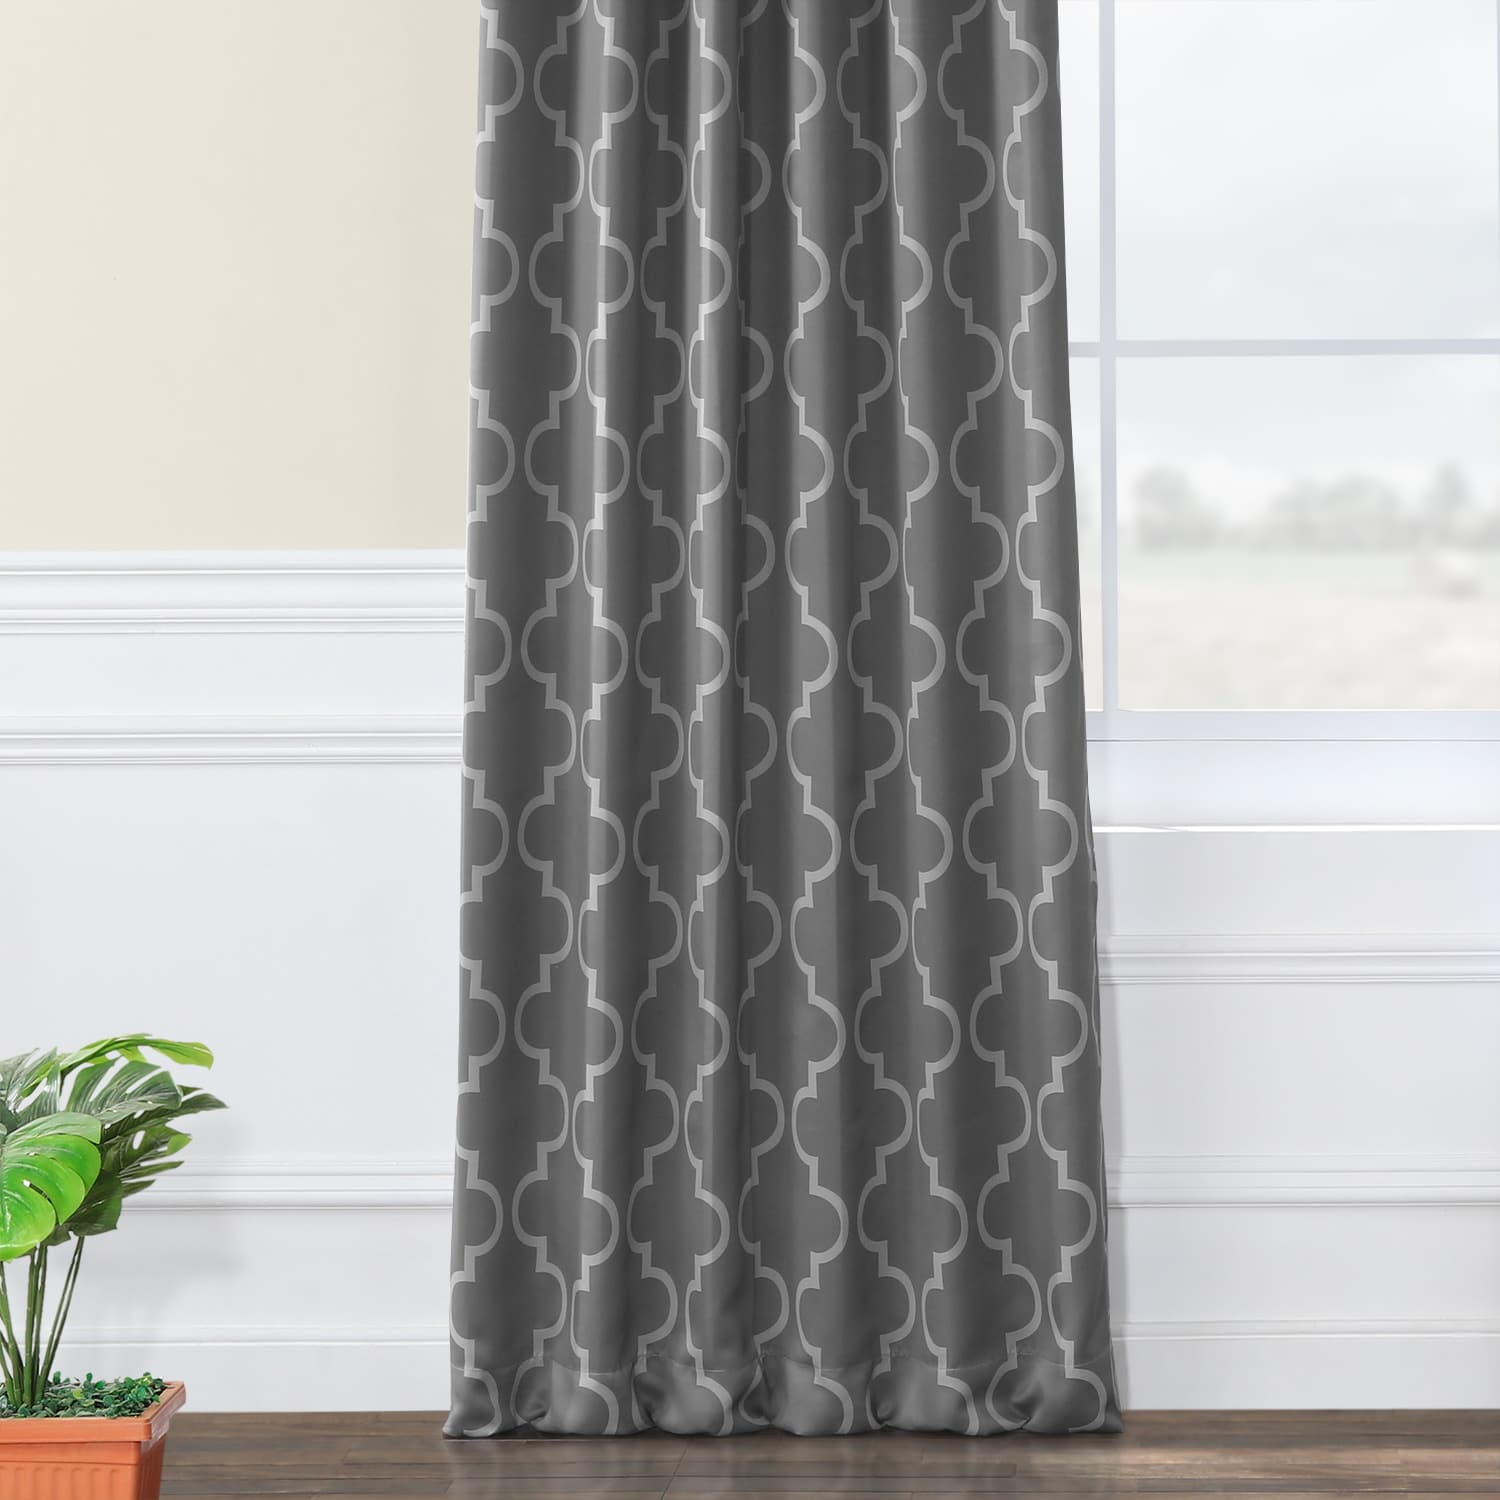 Seville Grey & Silver Blackout Room Darkening Curtain